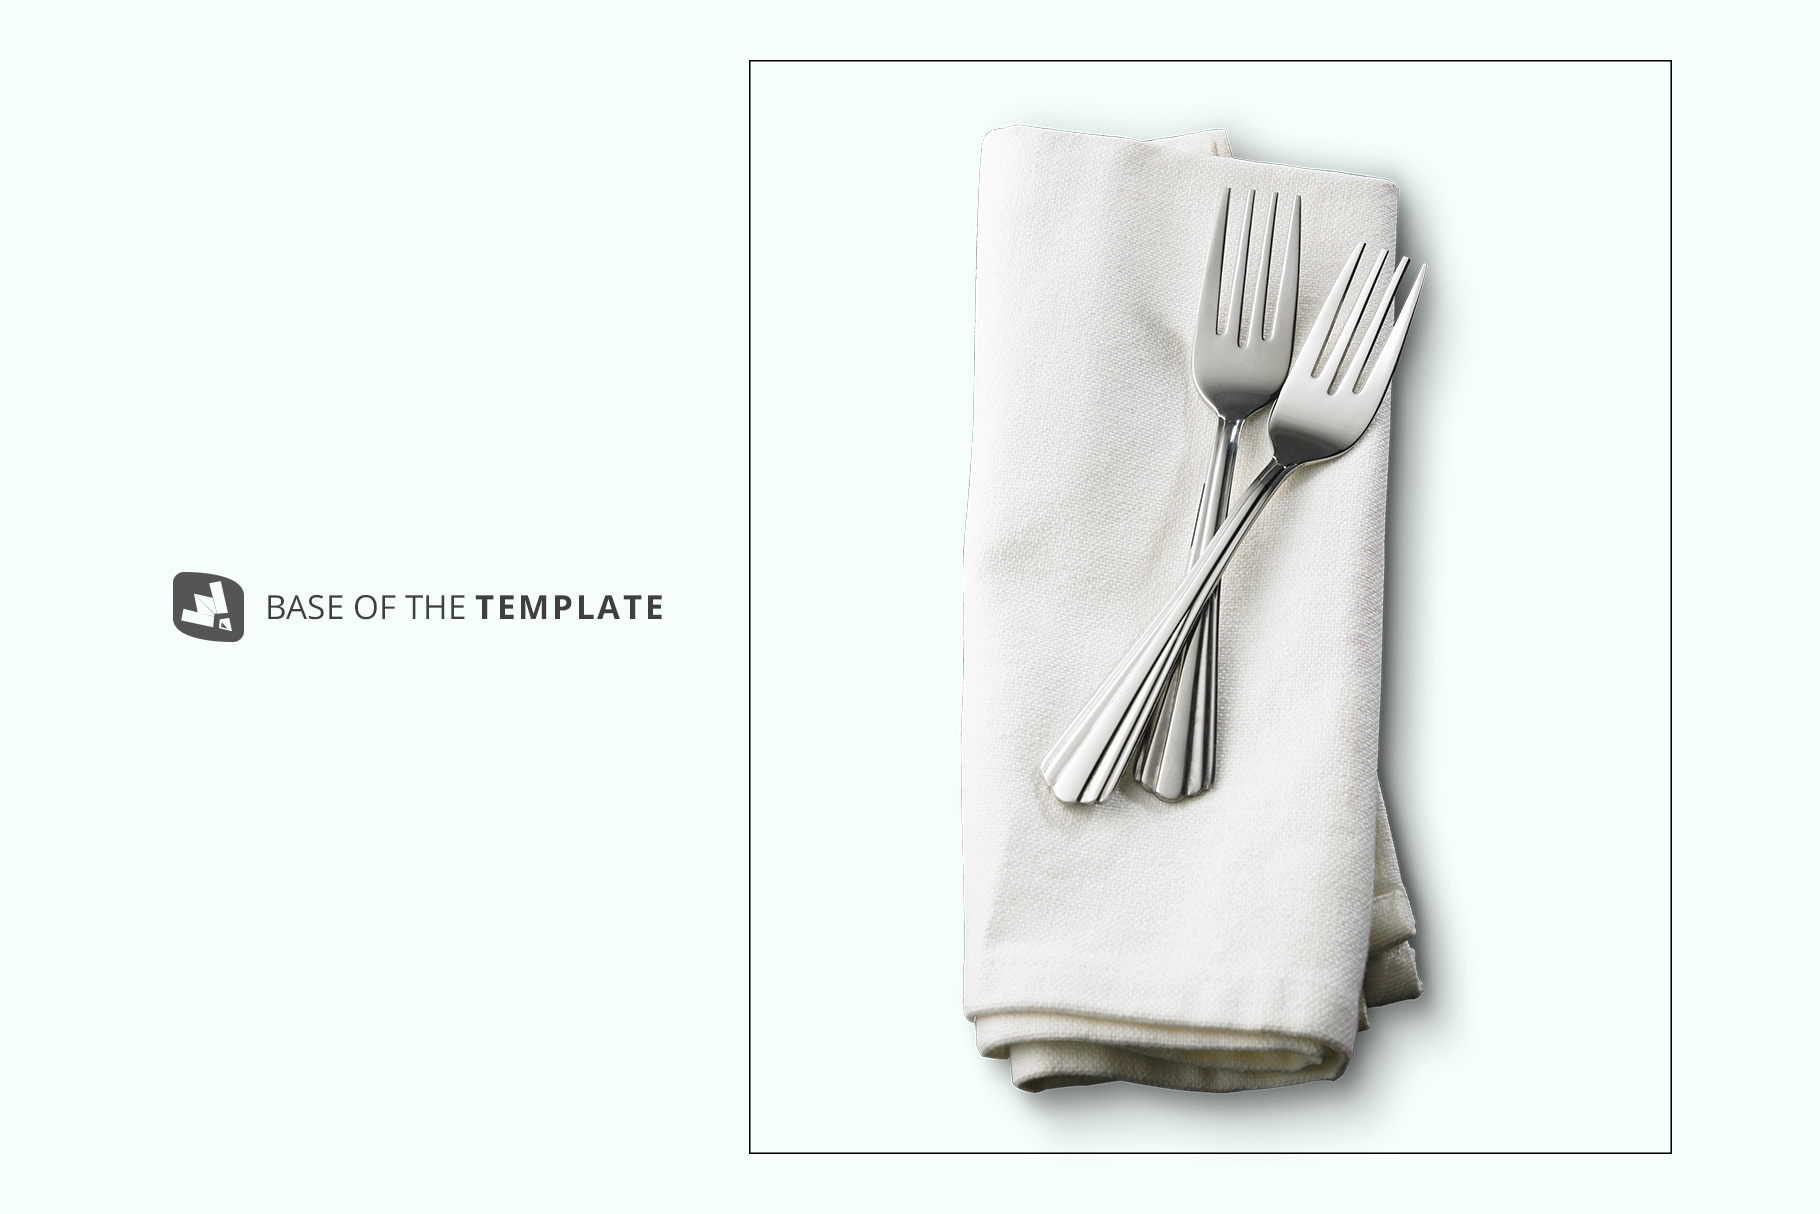 base image of the dinner napkin with cutlery mockup